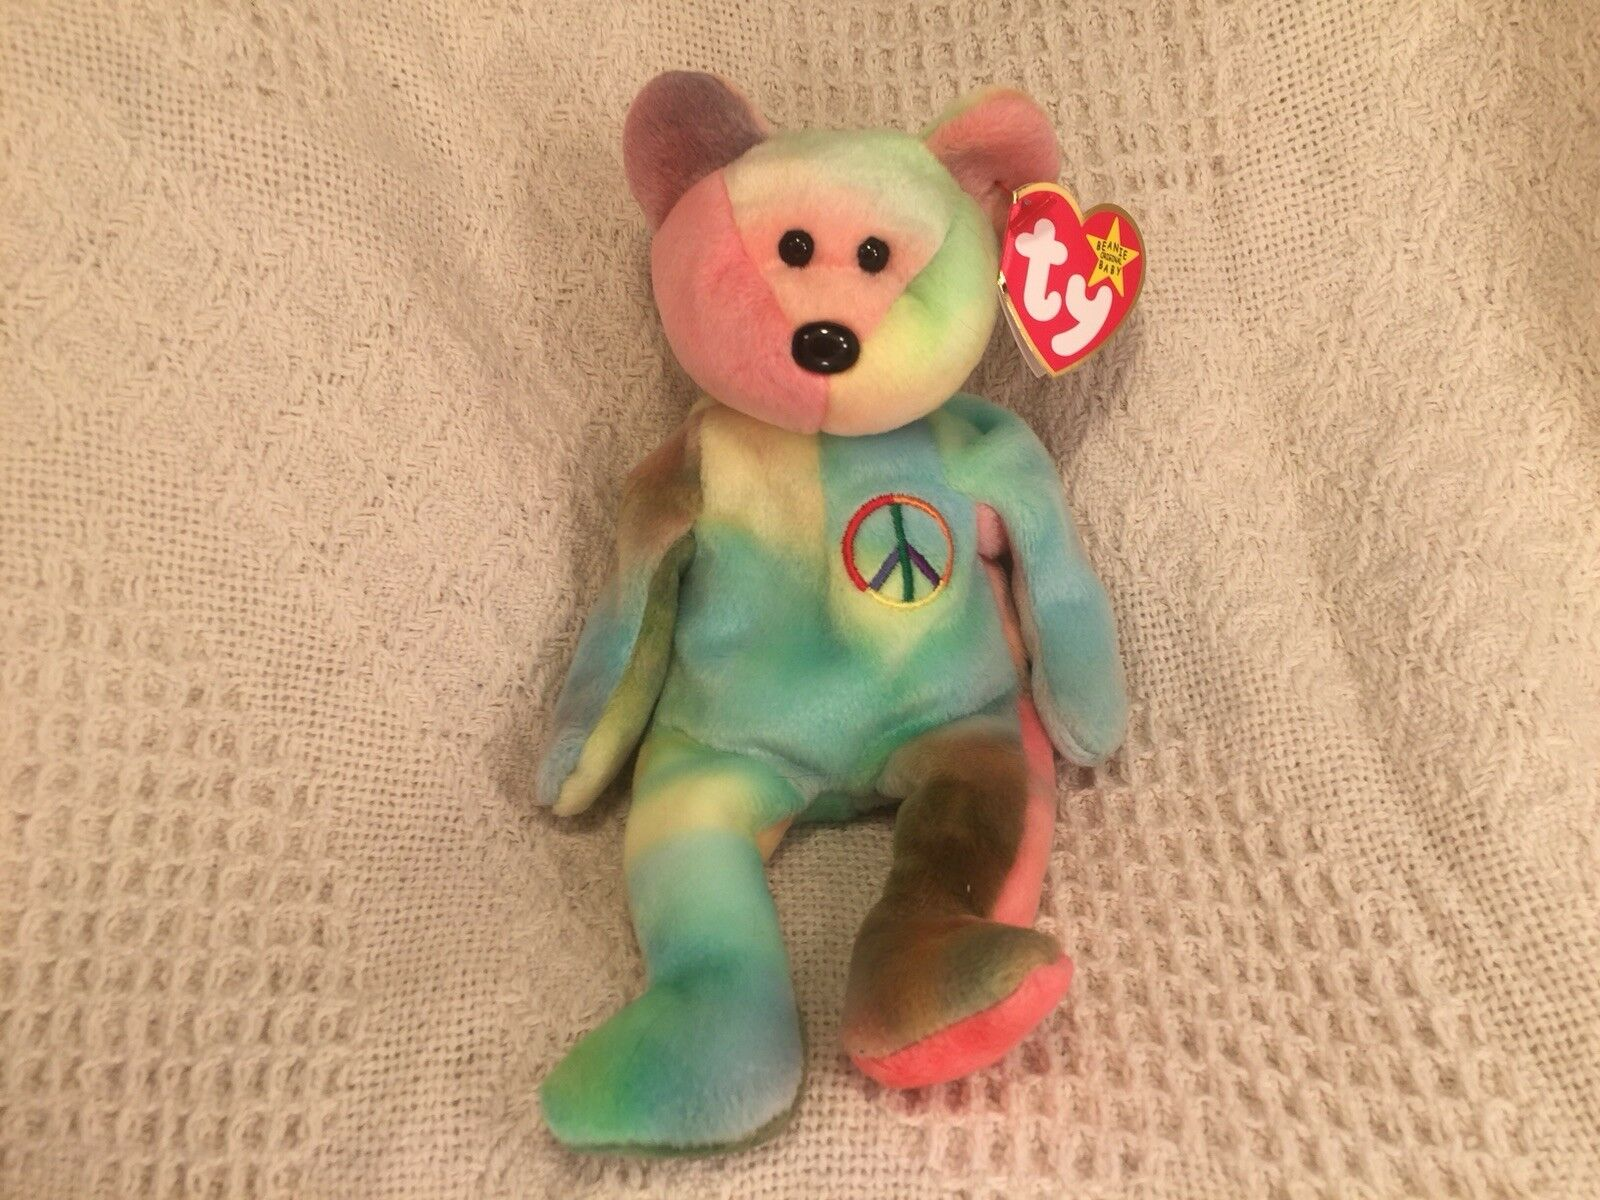 ... Rare 1996 Ty Beanie Baby Peace Bear Original Collectible with Tag Tag  with Errors 649904 ... 51a7c5ba8e44